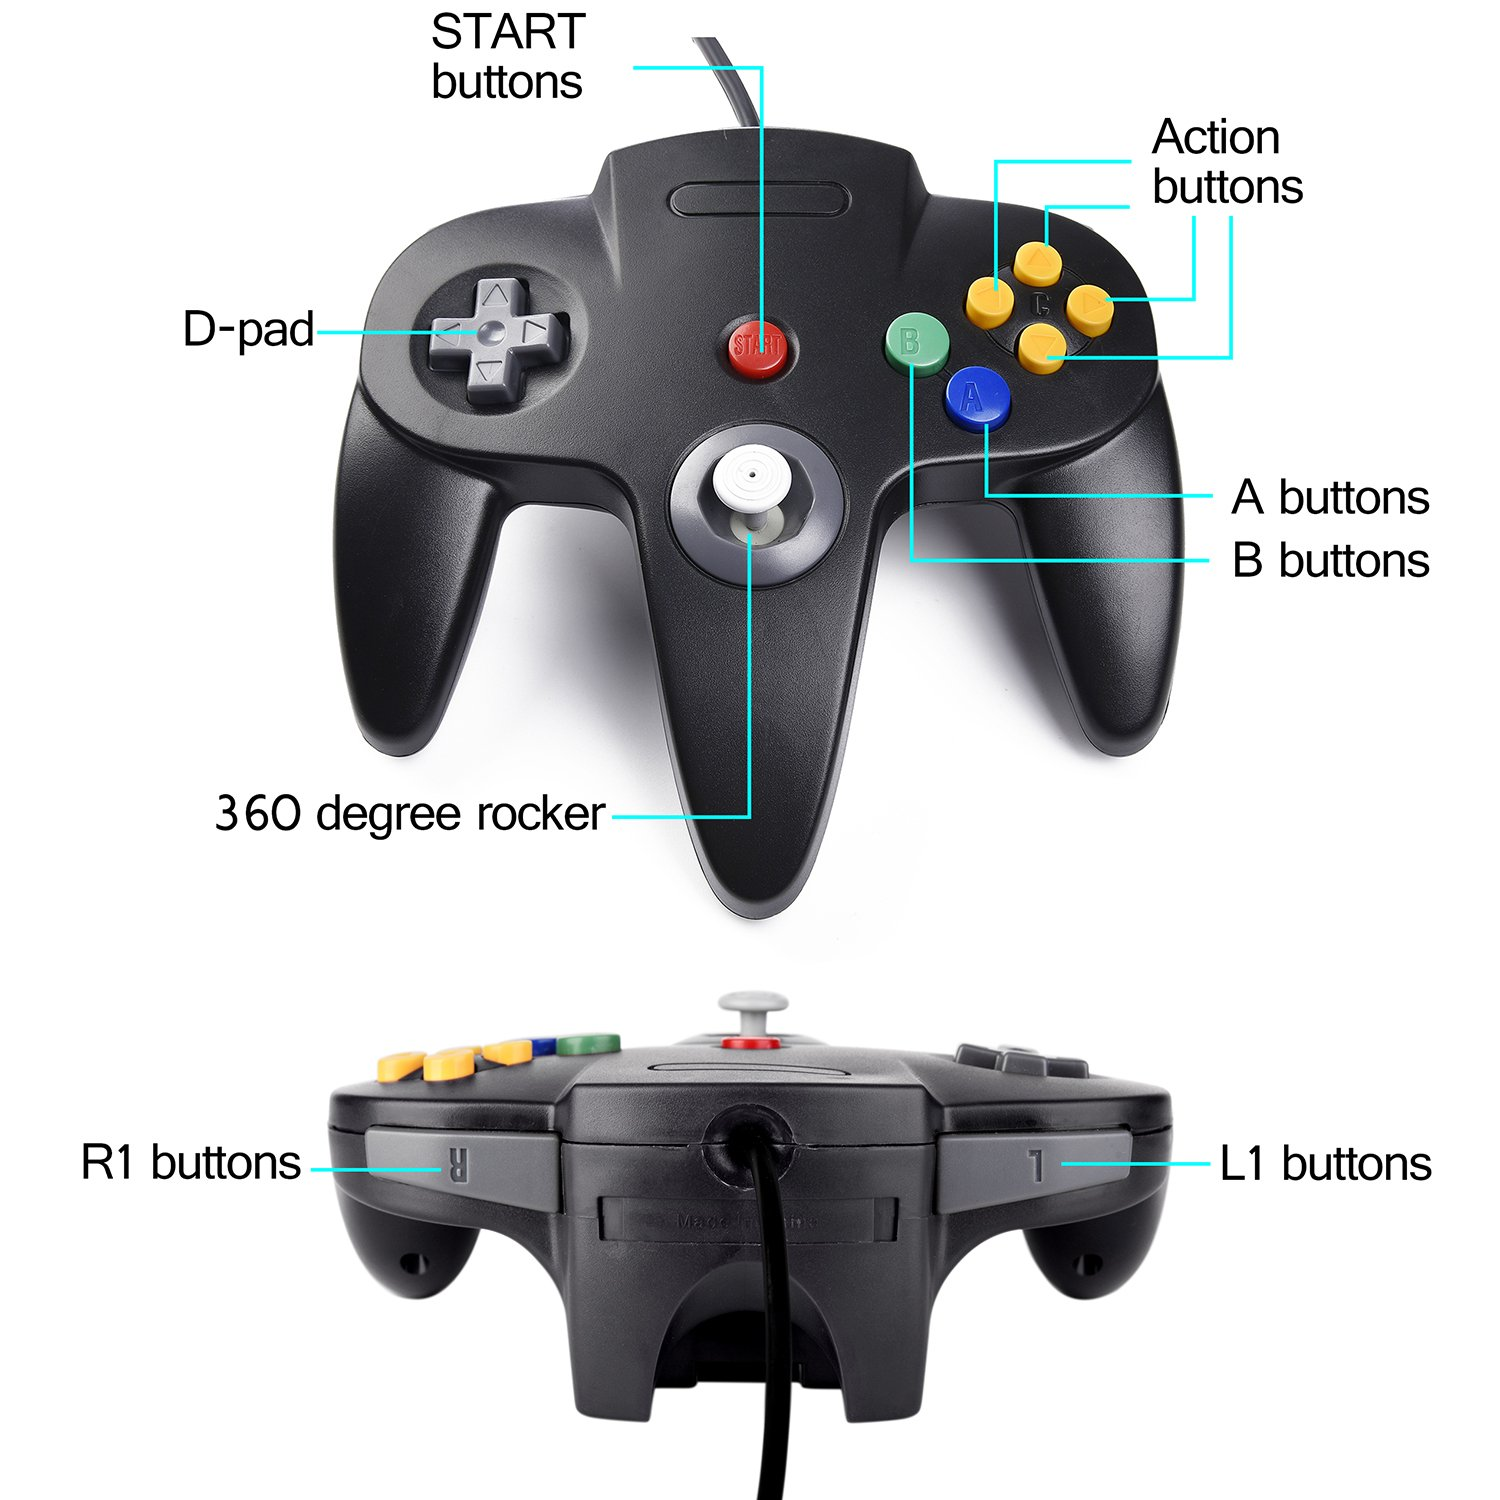 2xClassic 64 N64 Controller,kiwitata Retro Wired Gamepad Controller Joystick for N64 Console Nintendo 64 Video Games System Black+Gray by kiwitatá (Image #5)